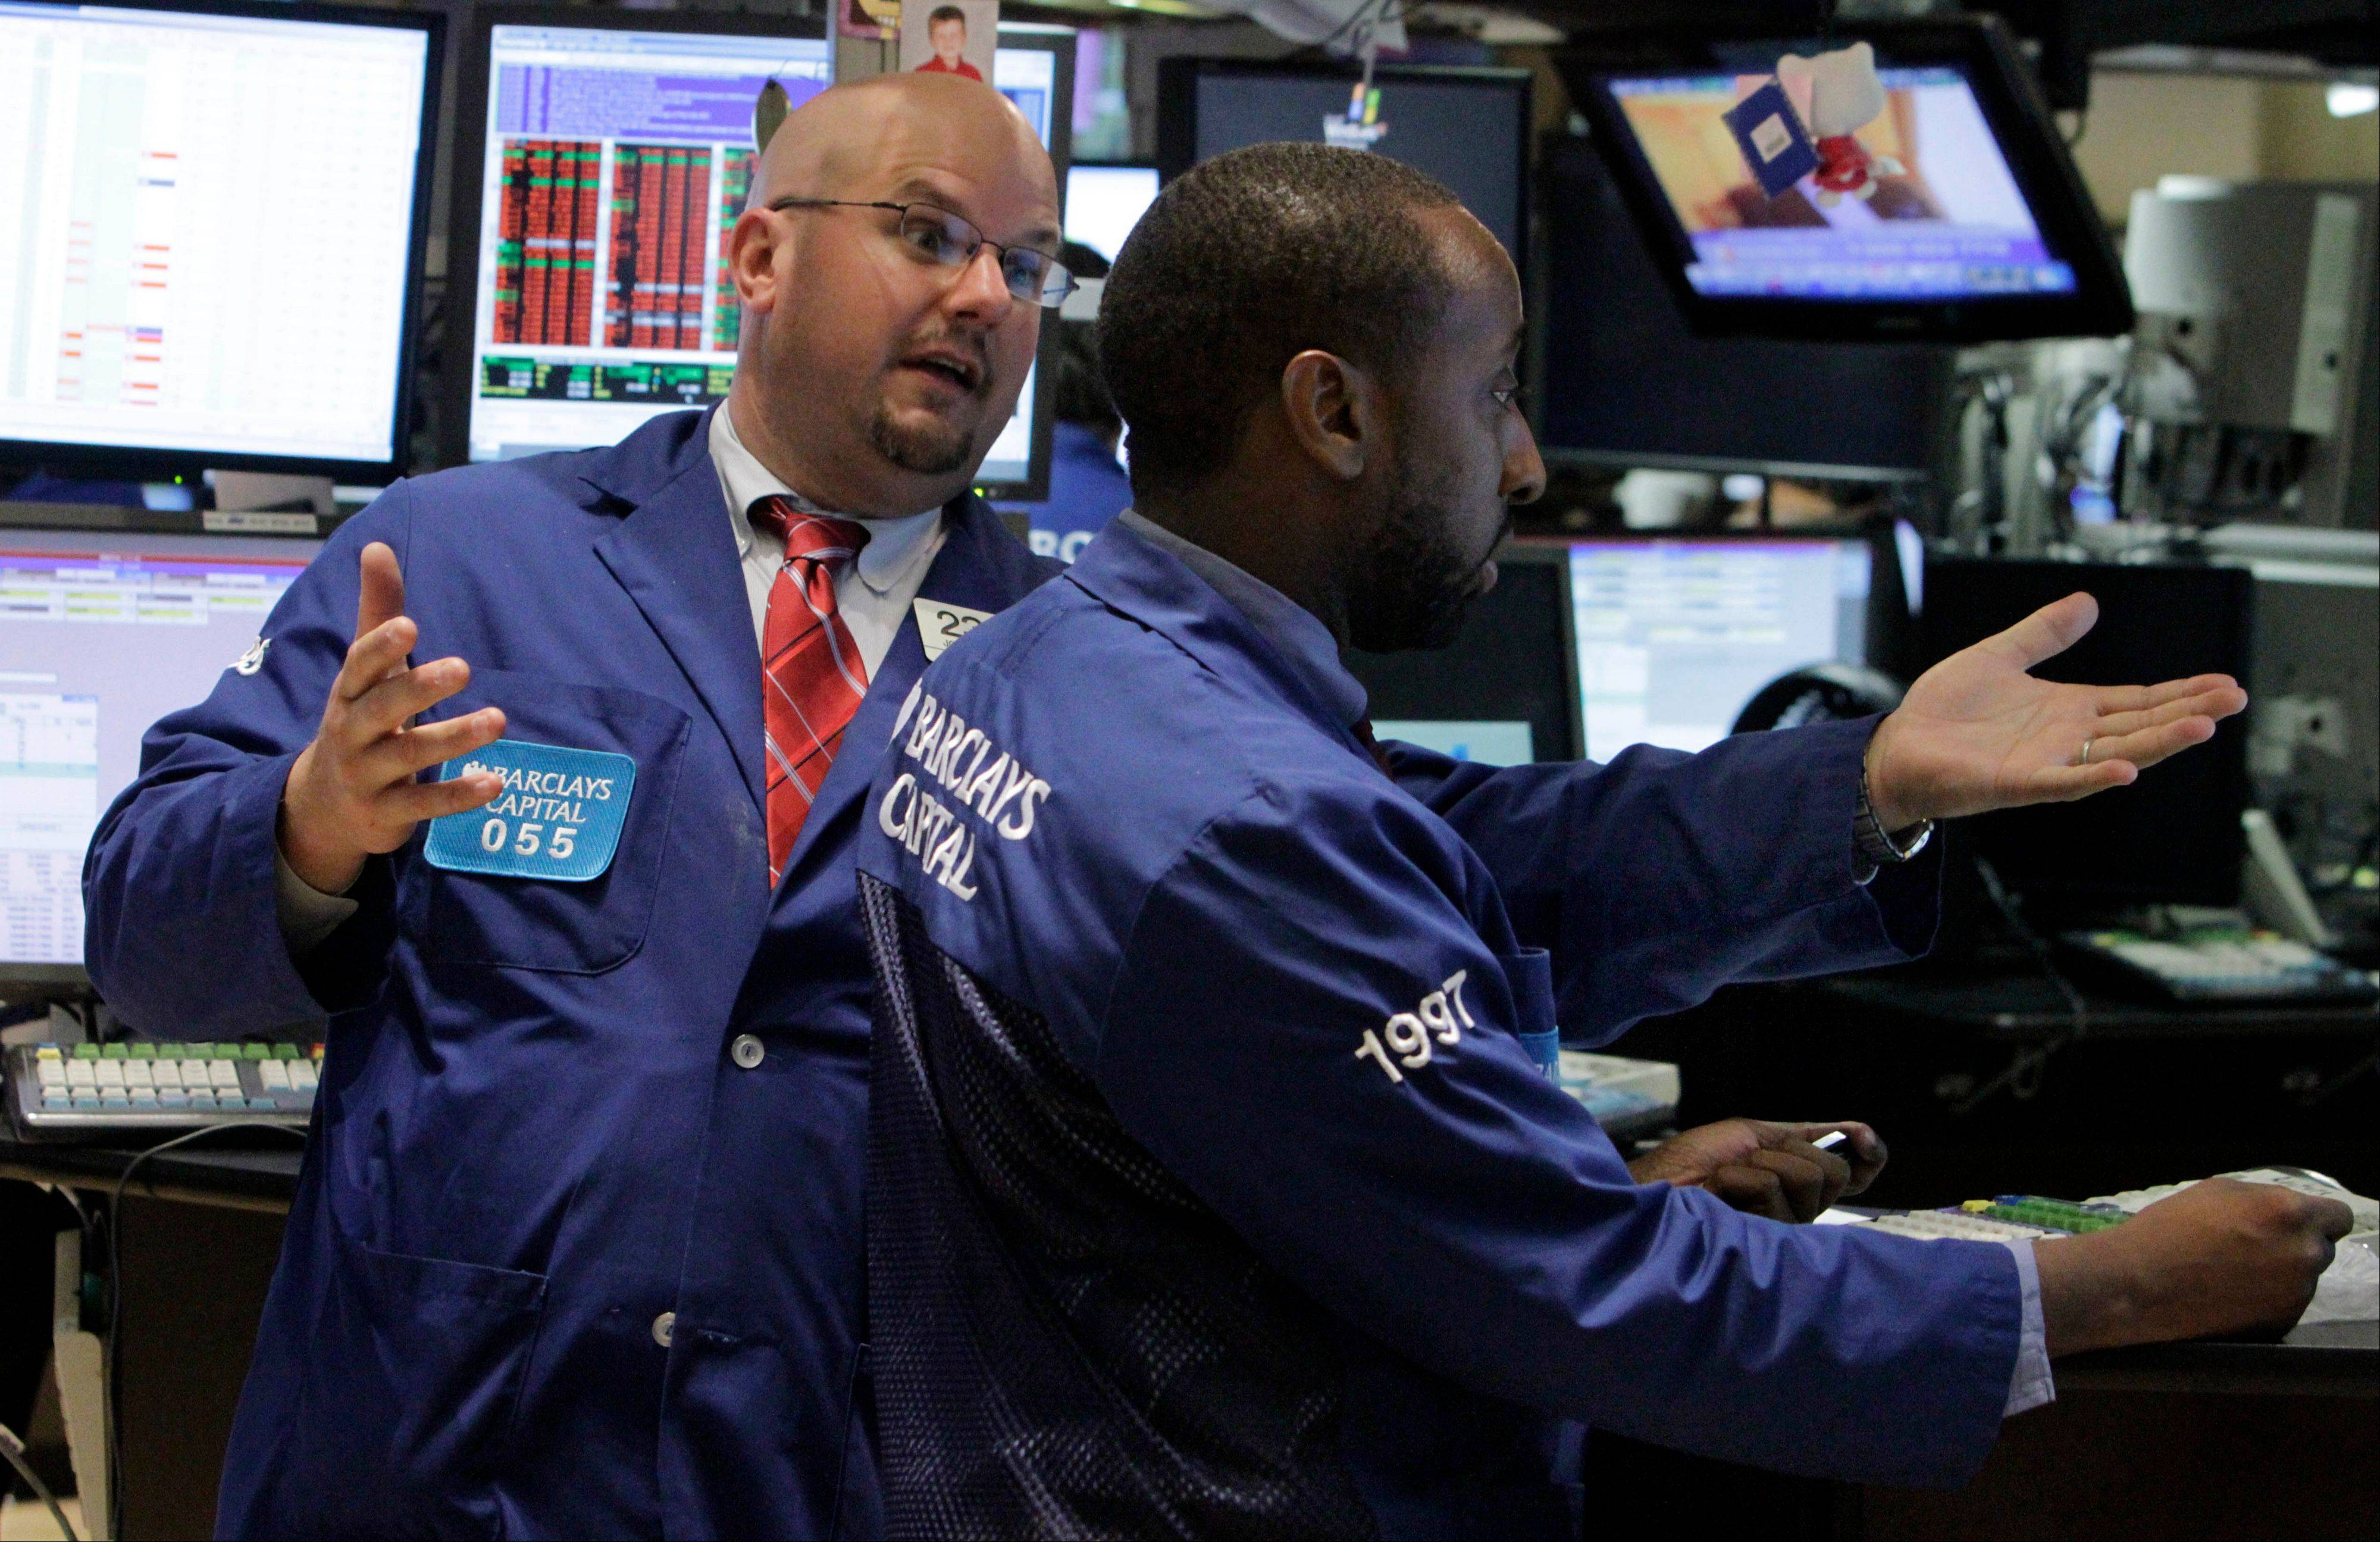 ASSOCIATED PRESSU.S. stocks fell, with benchmark indexes retreating from record highs, as concern grew that the Federal Reserve will scale back its stimulus efforts if the labor market continues to improve.